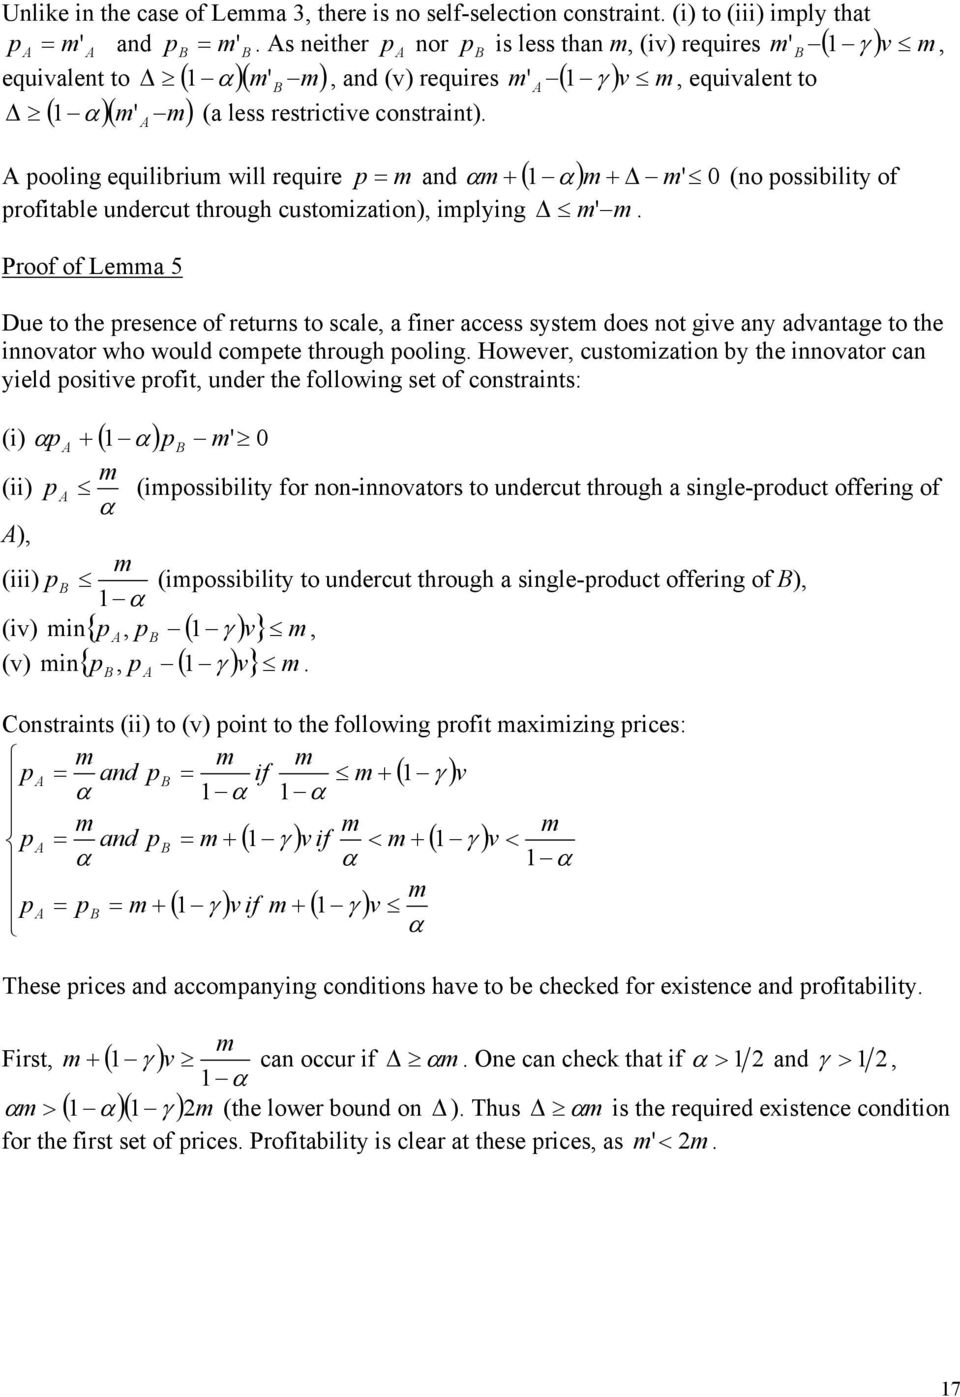 pooling equilibriu will require p = and + ( 1 ) + ' 0 (no possibility of profitable undercut through custoization), iplying '.